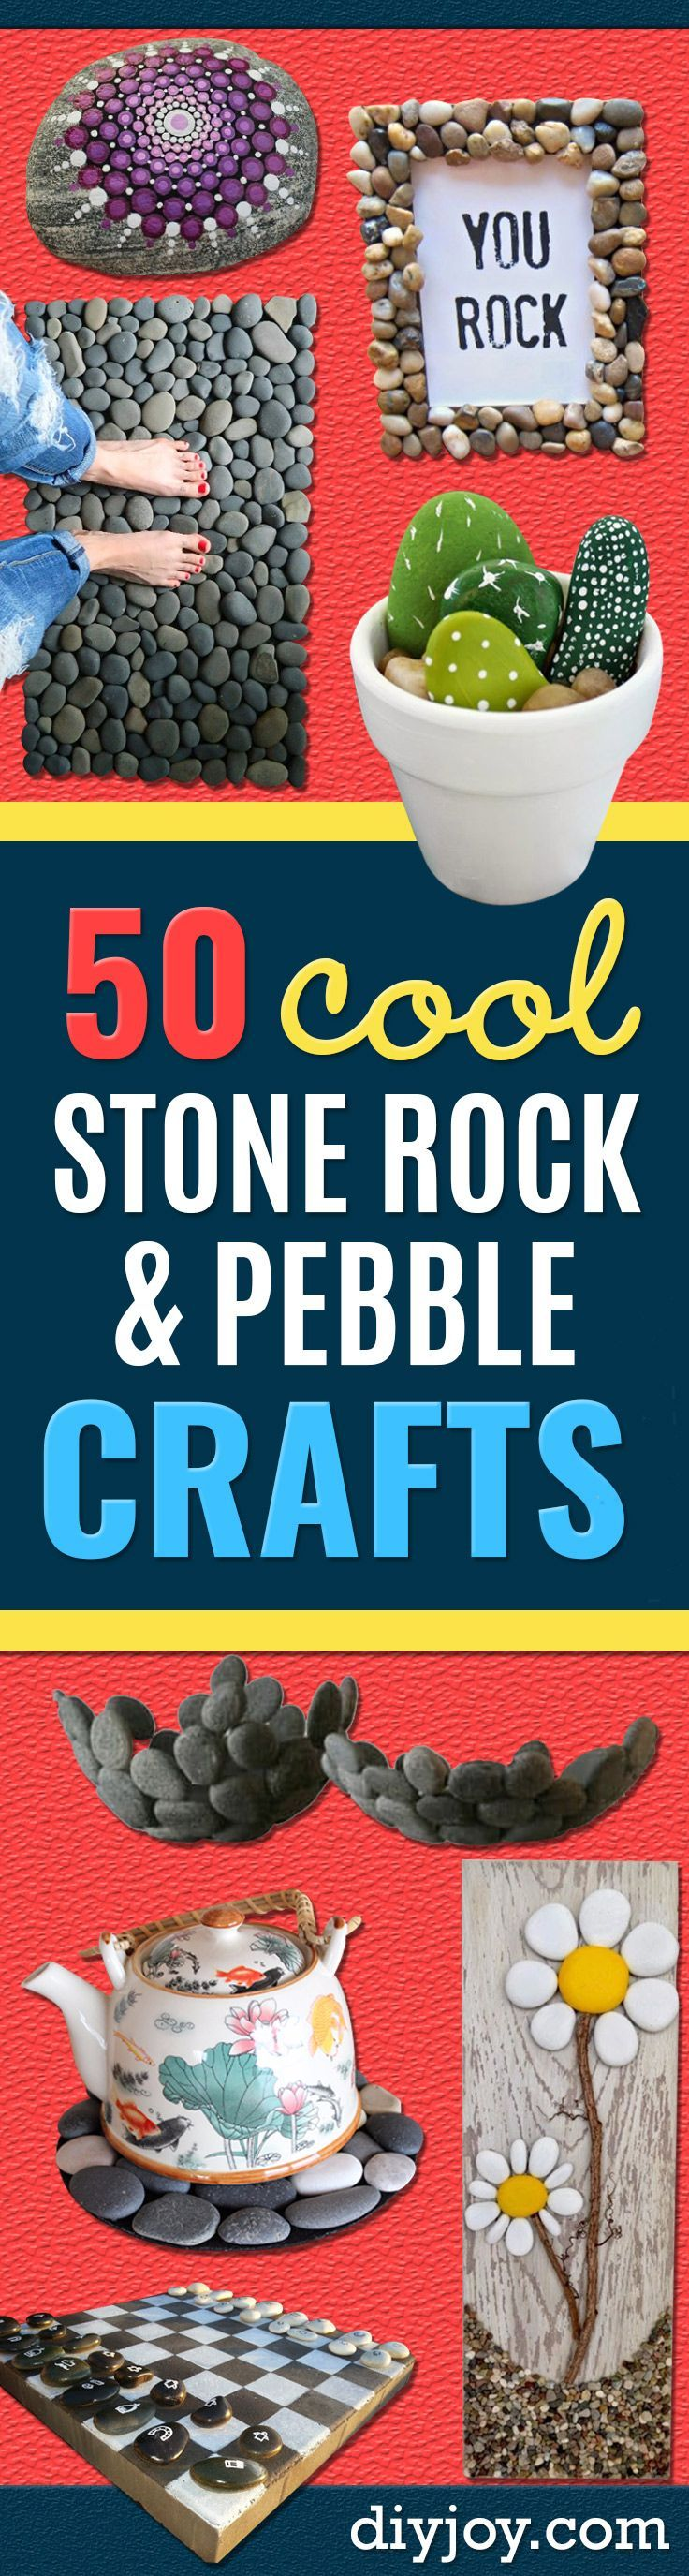 Ready rats diy mini scrapbook my crafts and diy projects - 50 Super Cool Stone And Pebble Crafts Pebble And Stone Crafts Diy